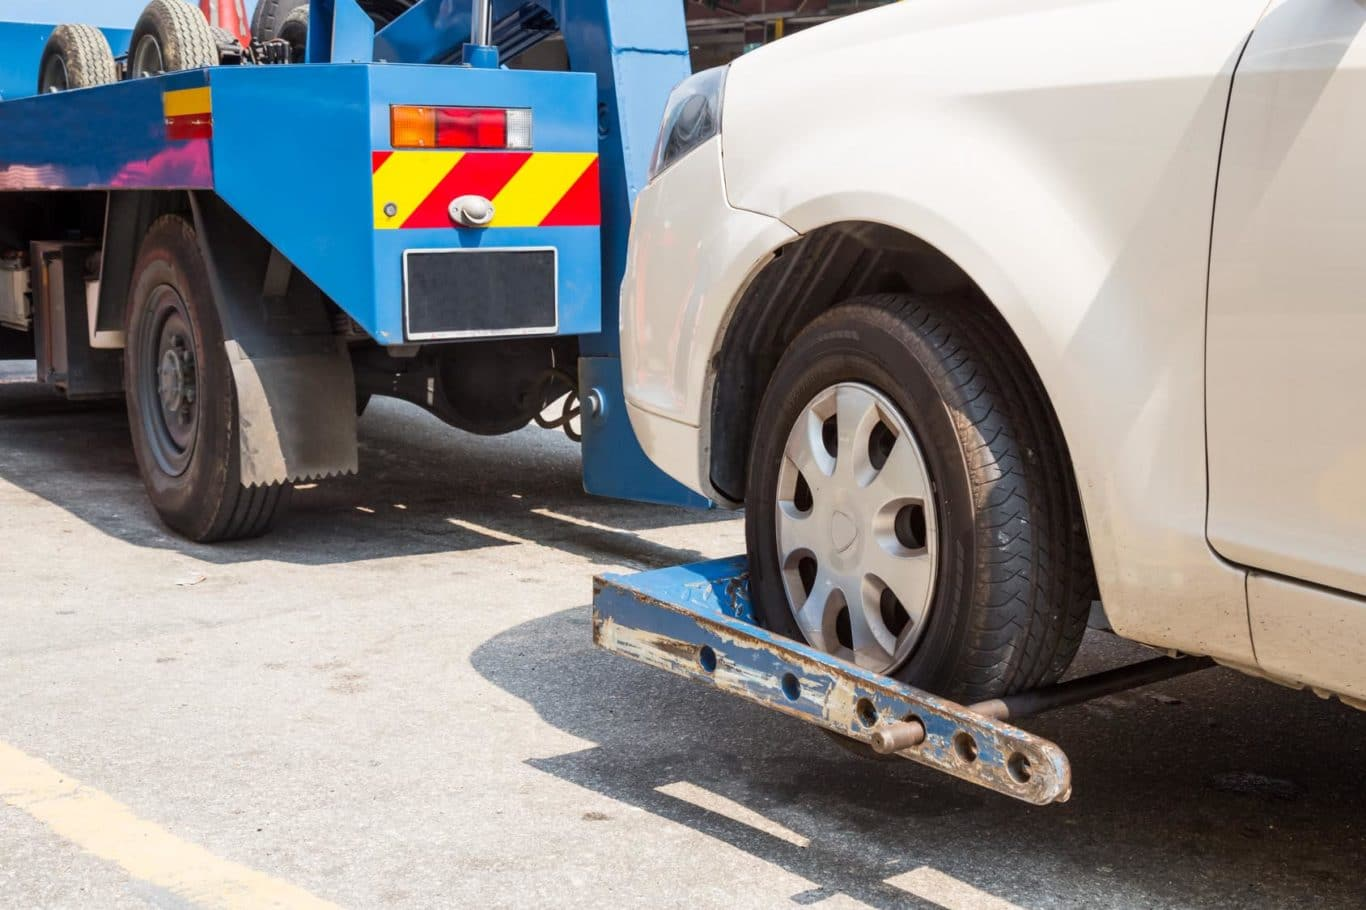 Glendalough expert Towing services